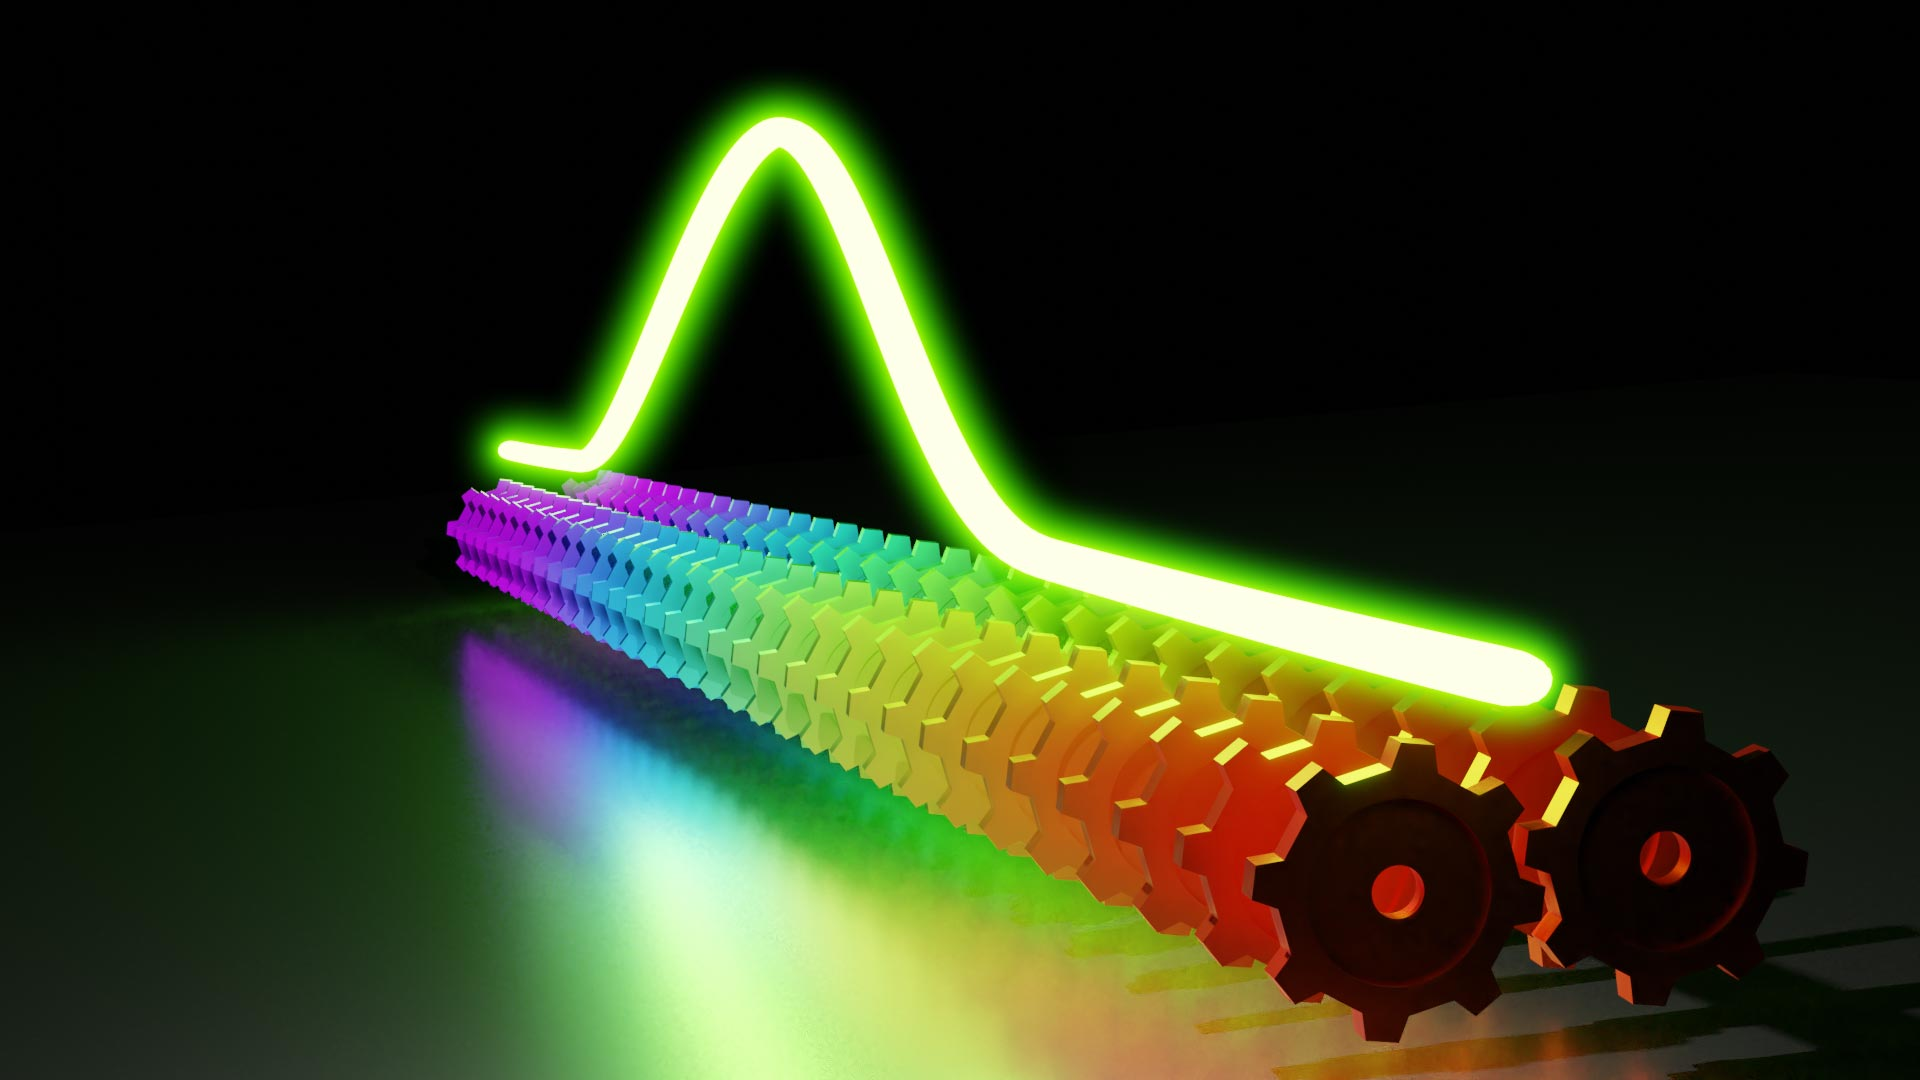 Emergent Nonlinear Phenomena: Optical Frequency Combs Found a New Dimension